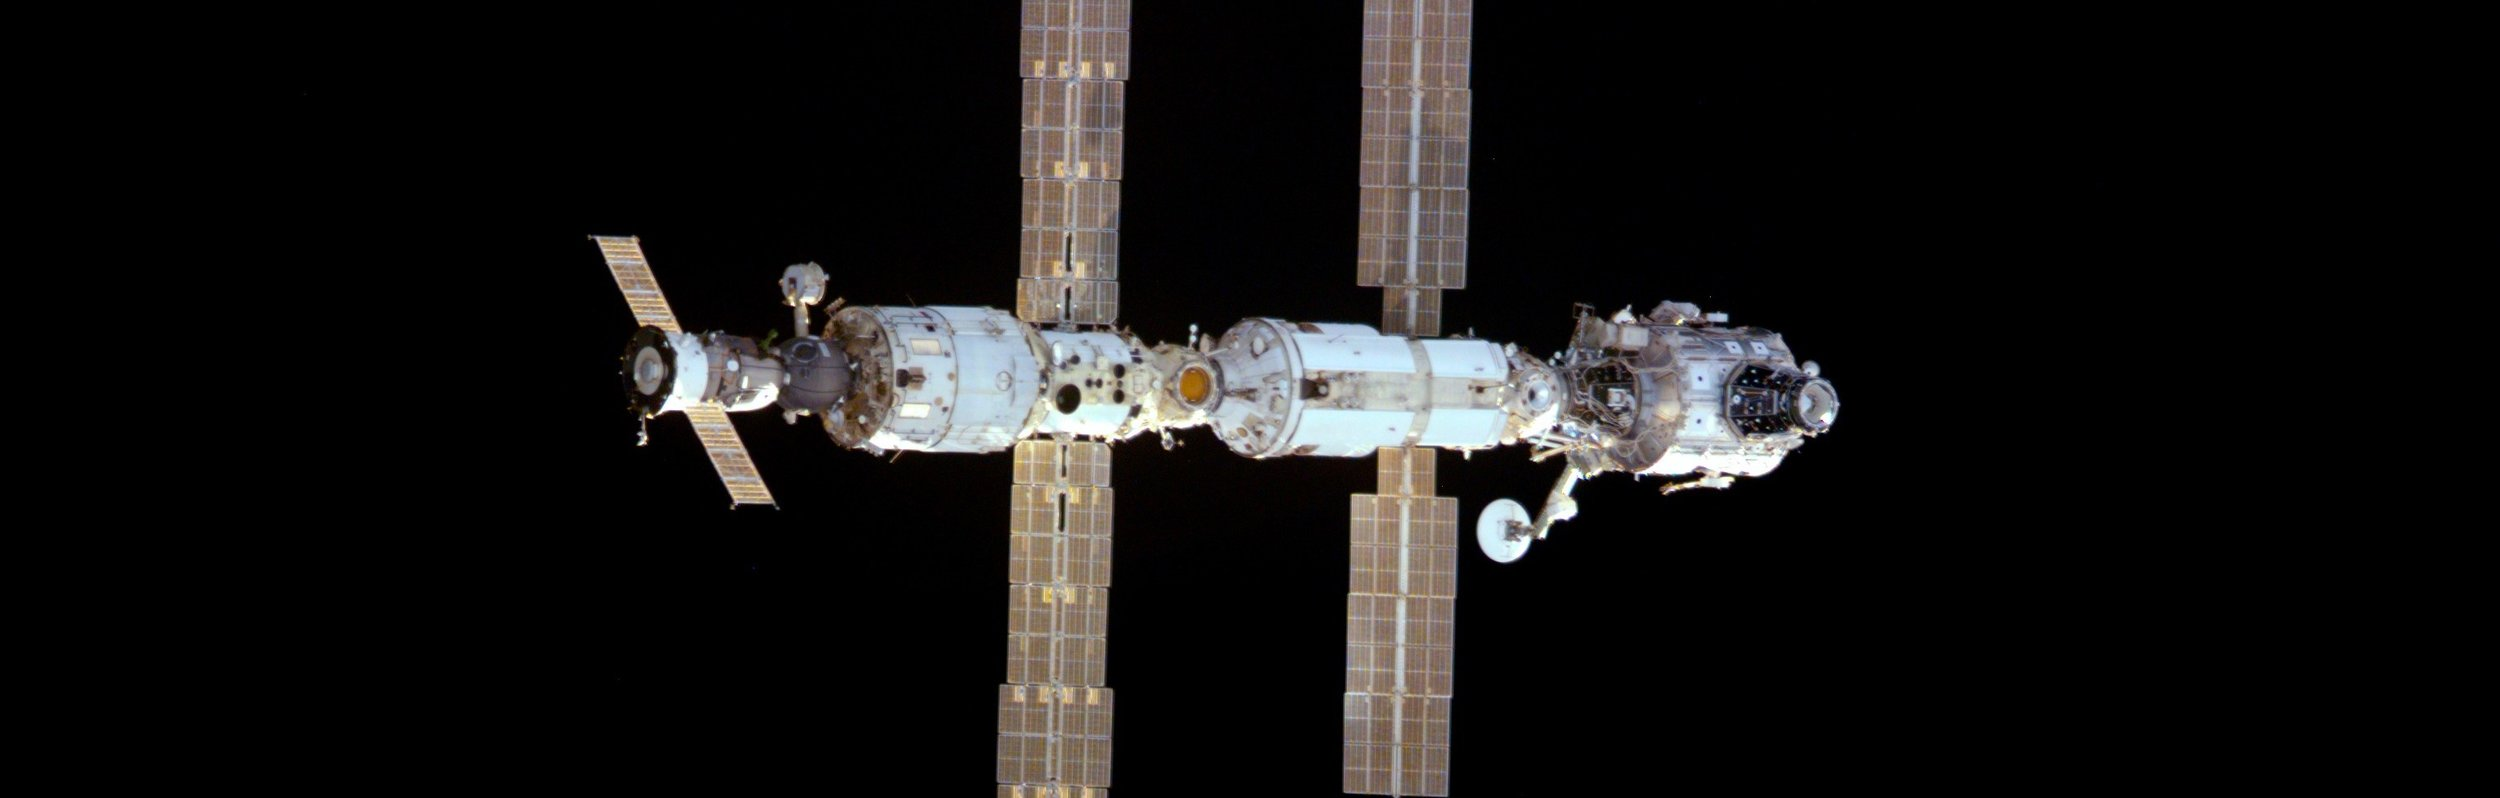 A view of the early International Space Station from space shuttle  Endeavour  in December 2000. From left to right, the major pieces are Soyuz TM-31 and the  Zvezda ,  Zarya  and  Unity  modules. Photo Credit: NASA